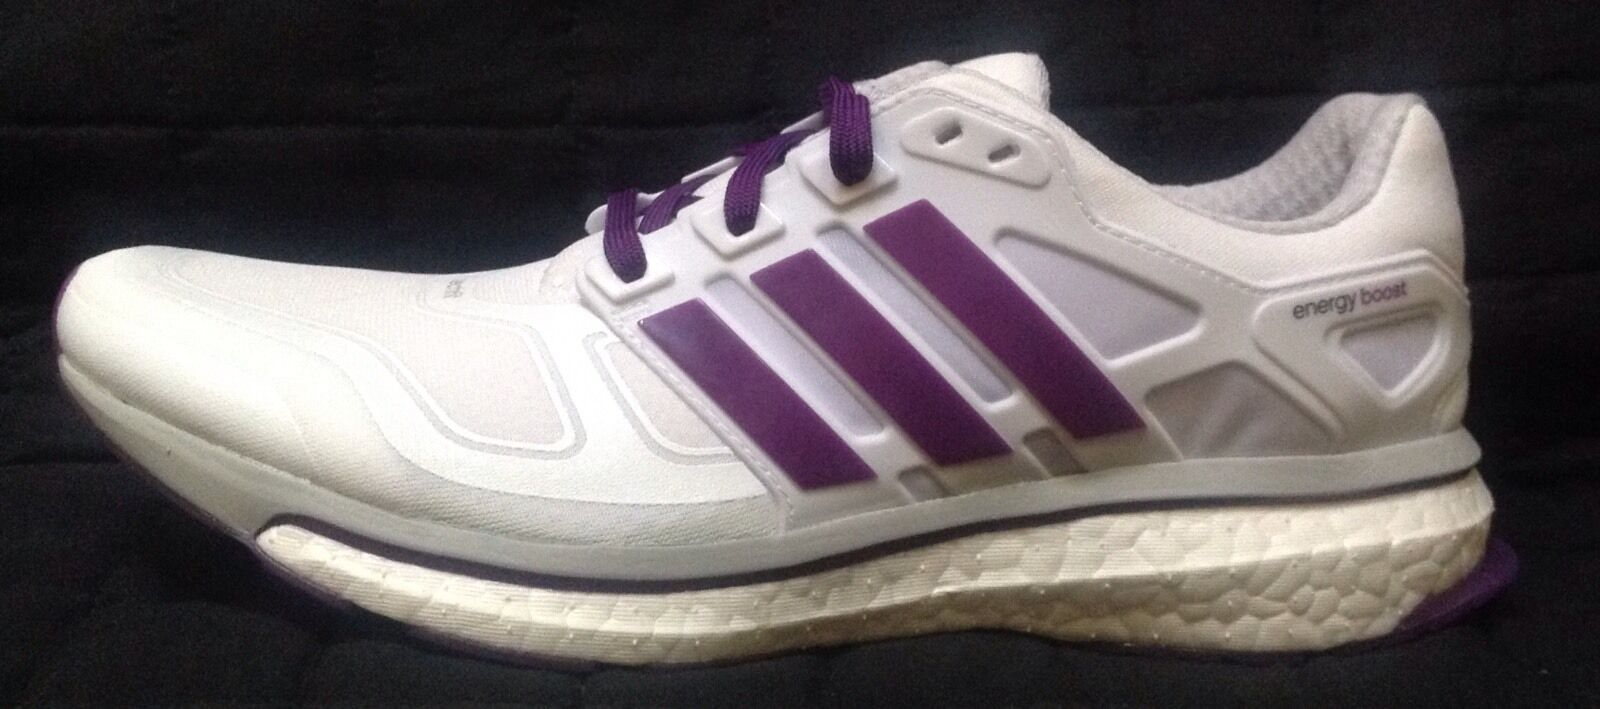 ADIDAS ENERGY BOOST 100% 2 WOMEN'S RUNNING Schuhe 100% BOOST AUTHENTIC f6208f